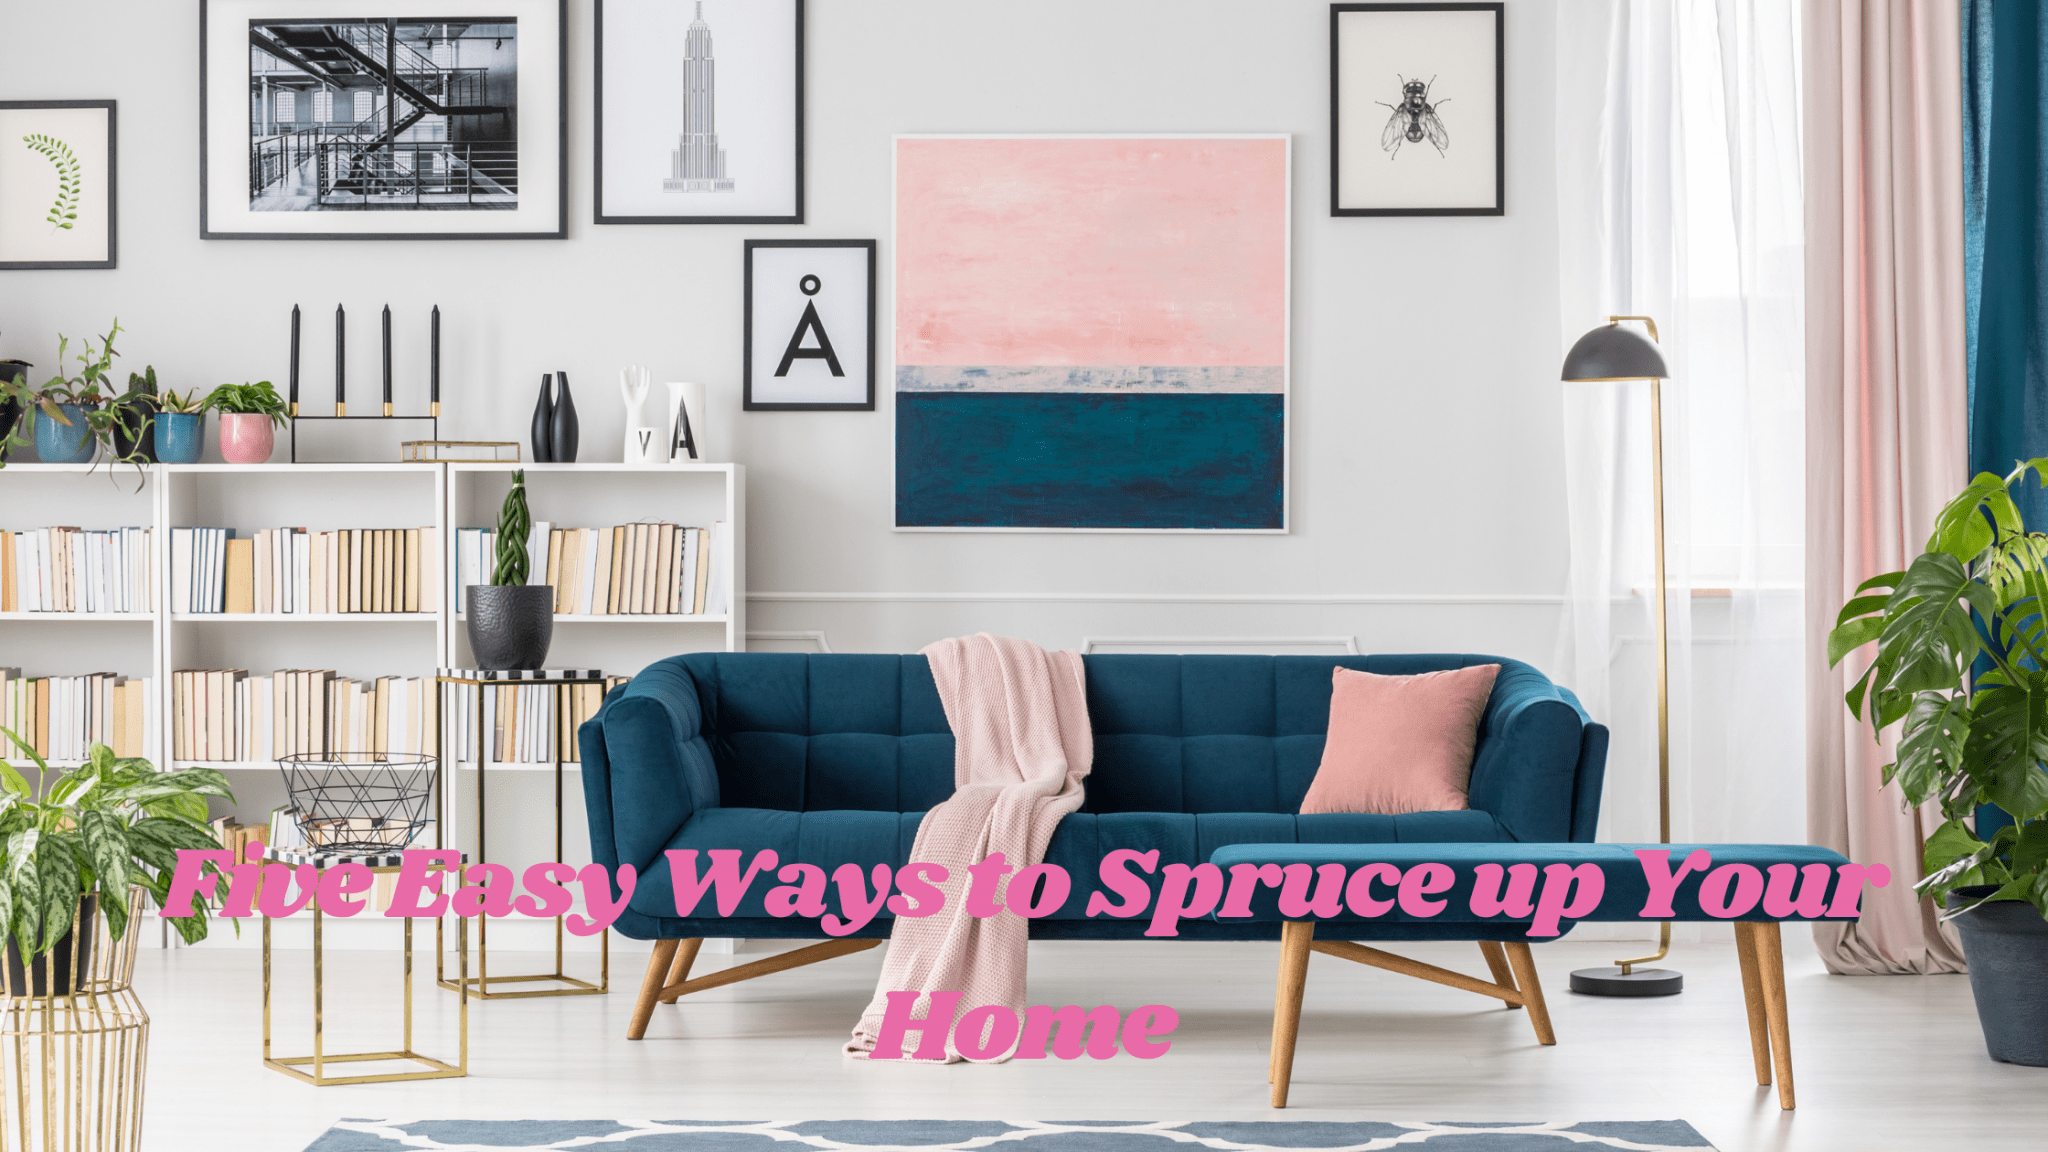 Five Easy Ways to Spruce up Your Home